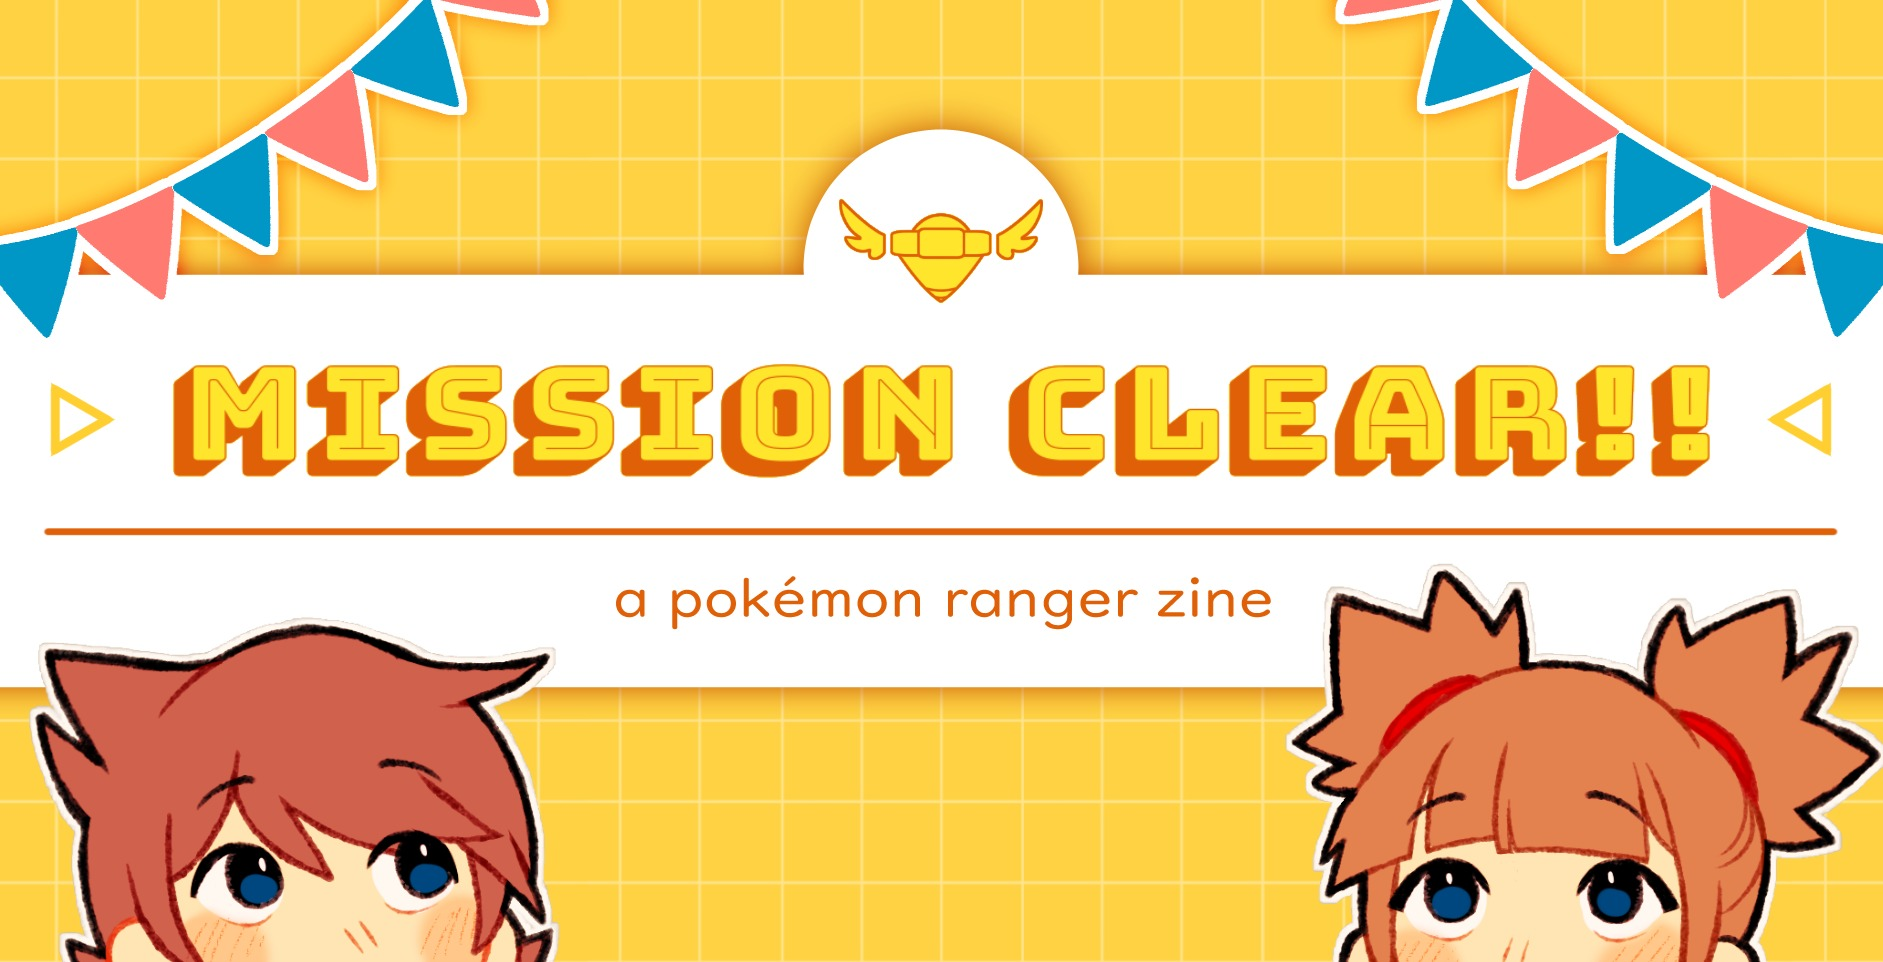 Mission Clear!